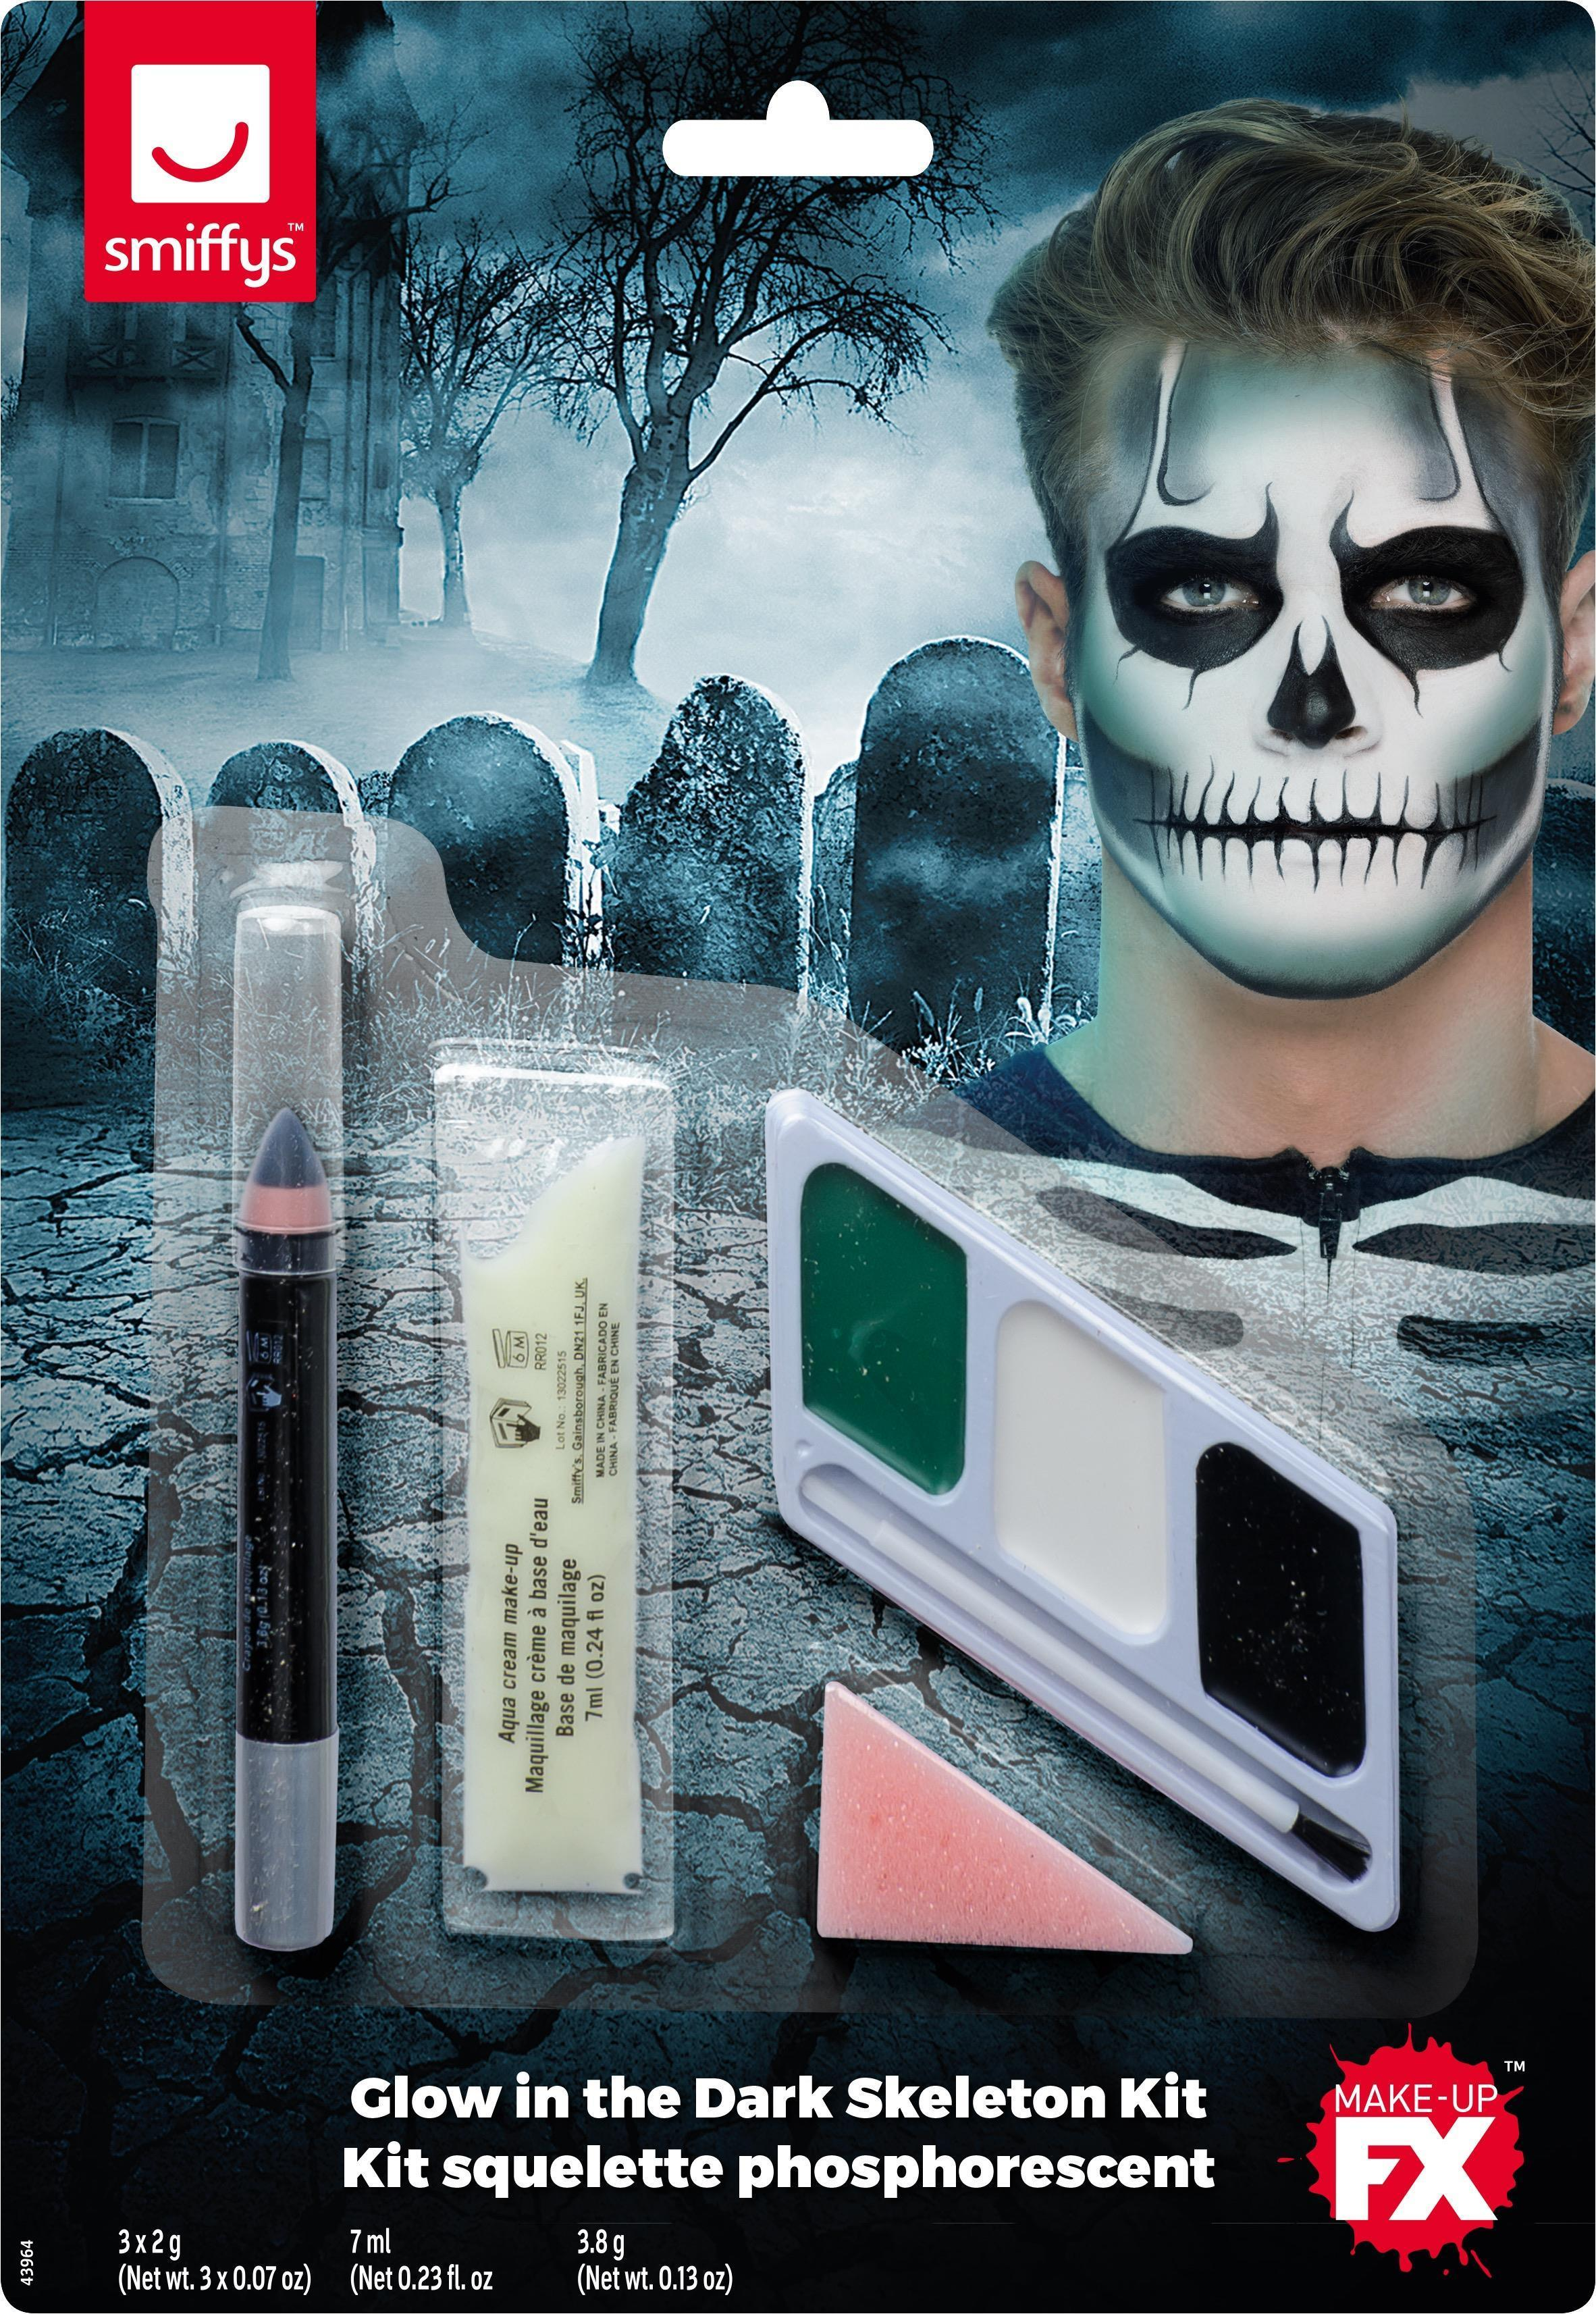 G.I.D. Skeleton Make-up Kit